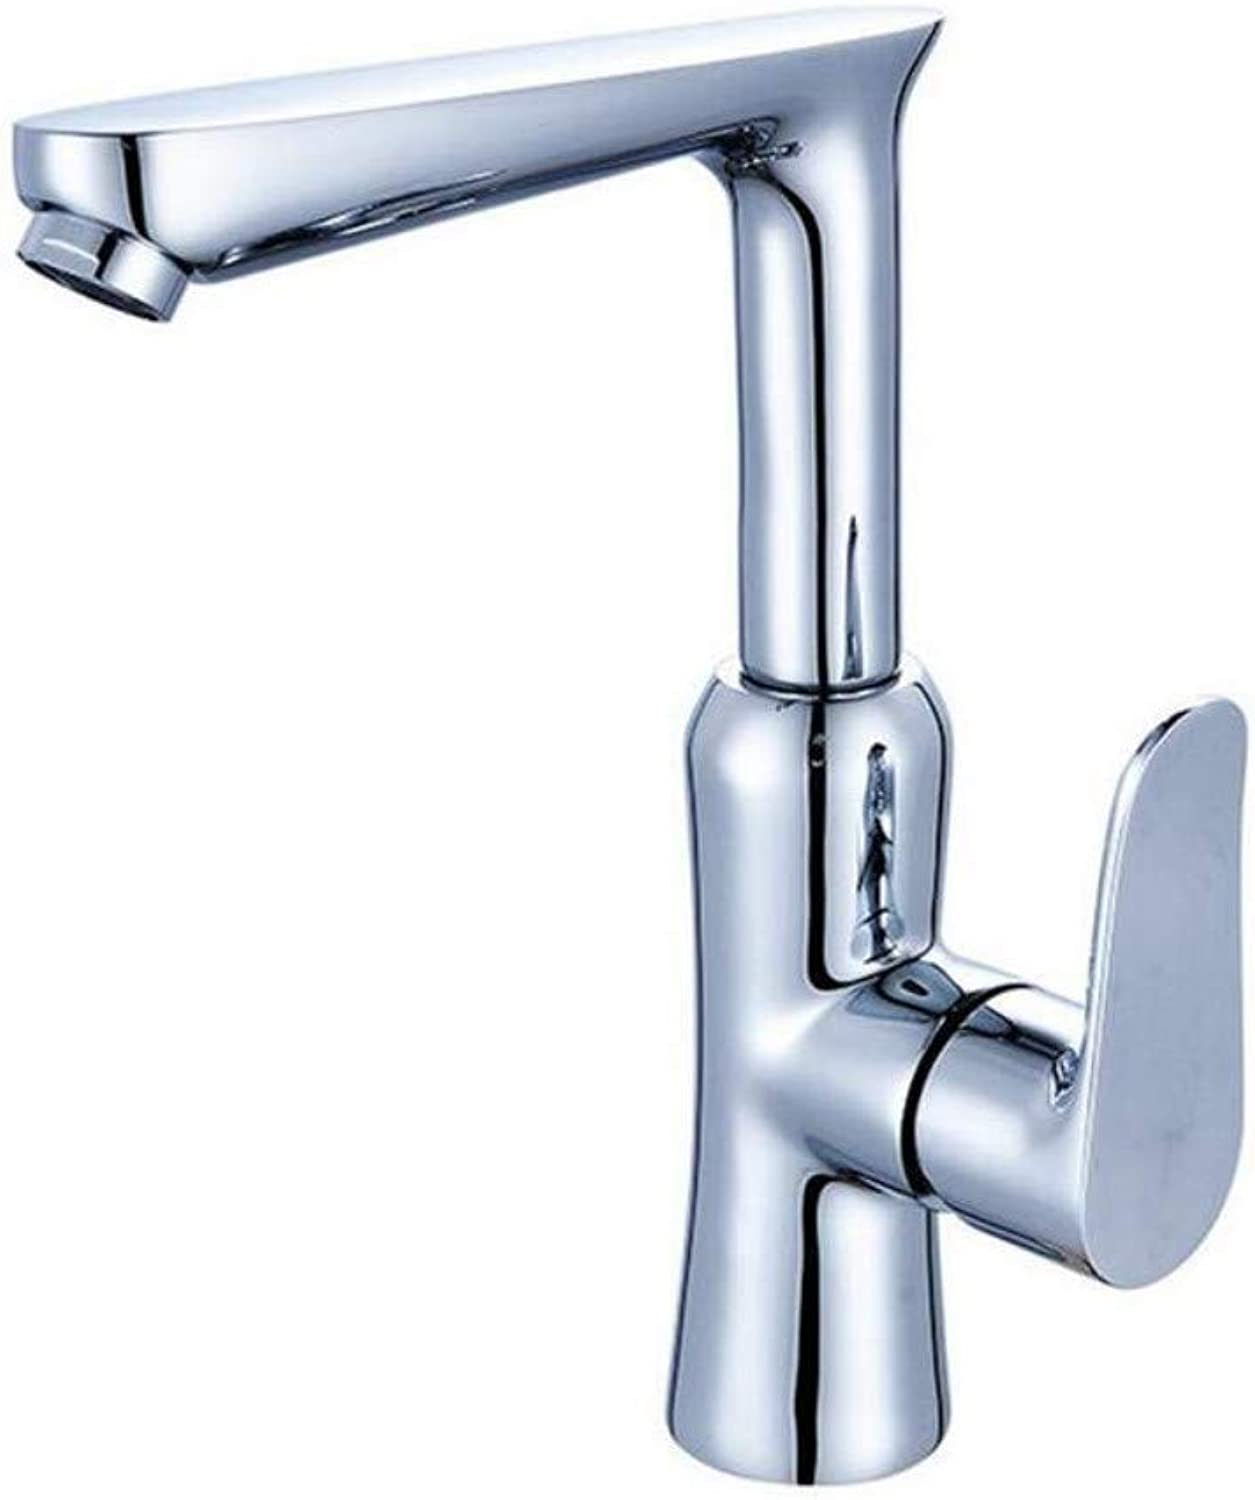 Taps Kitchen Sink360 redary Basin Faucet Washbasin Faucet Mixed Water Single Hole Faucet